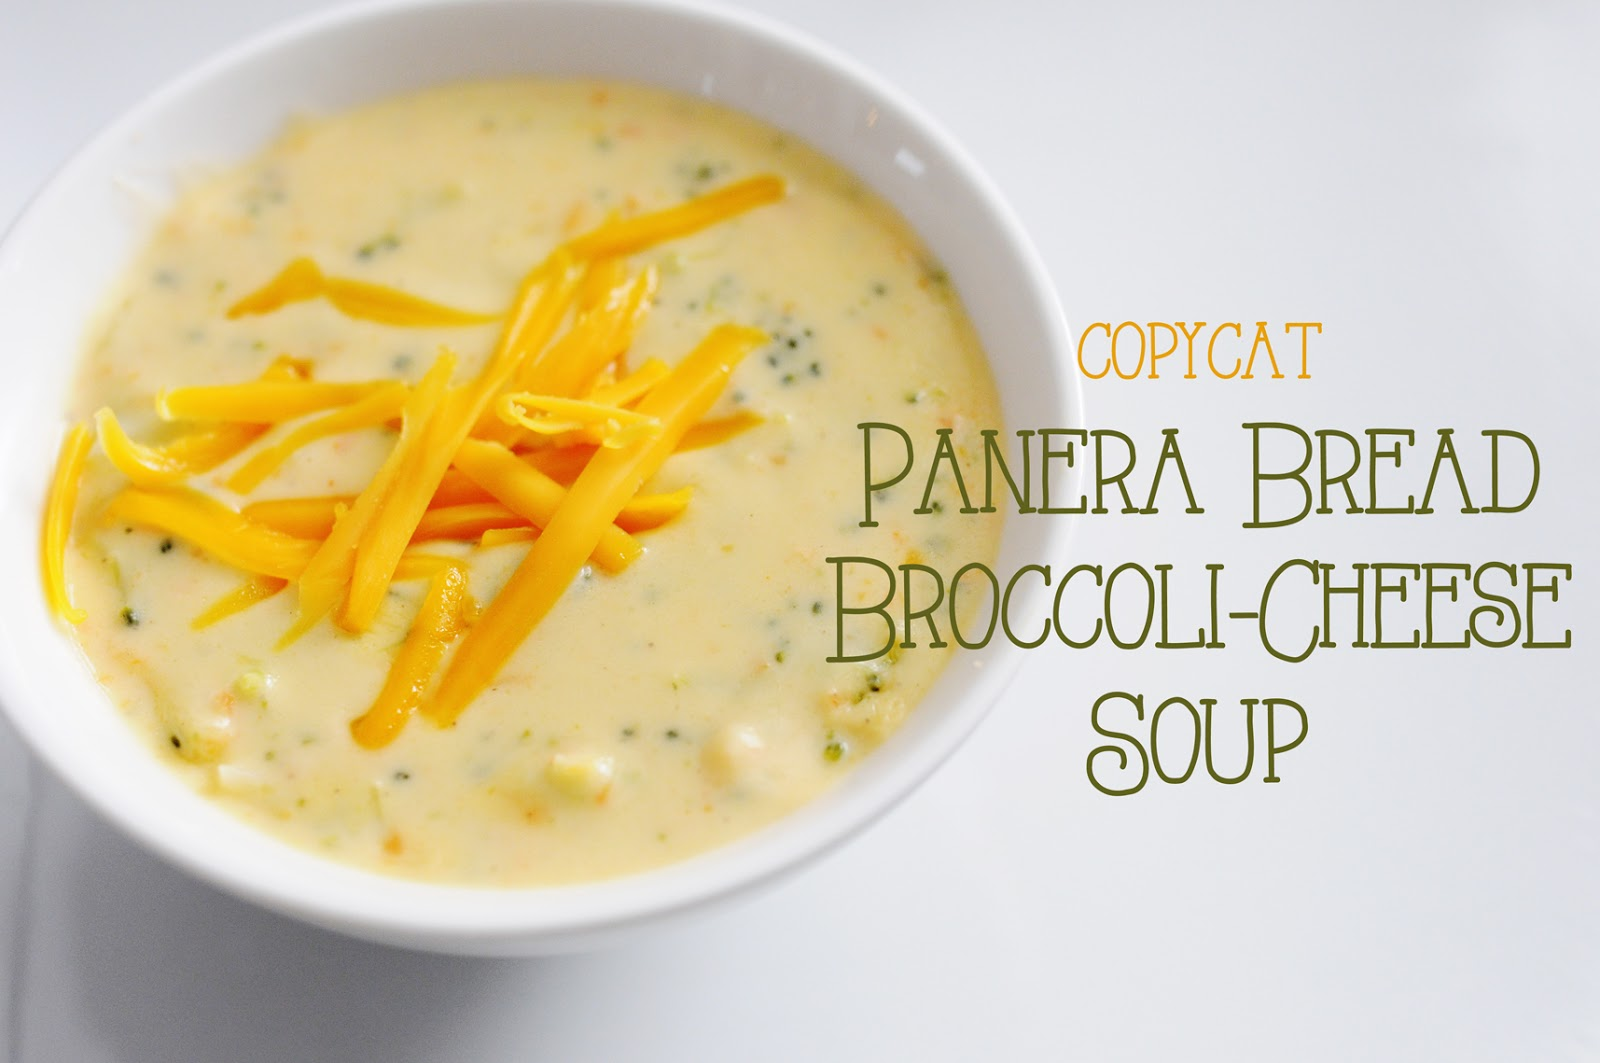 Panera broccoli cheese soup recipes